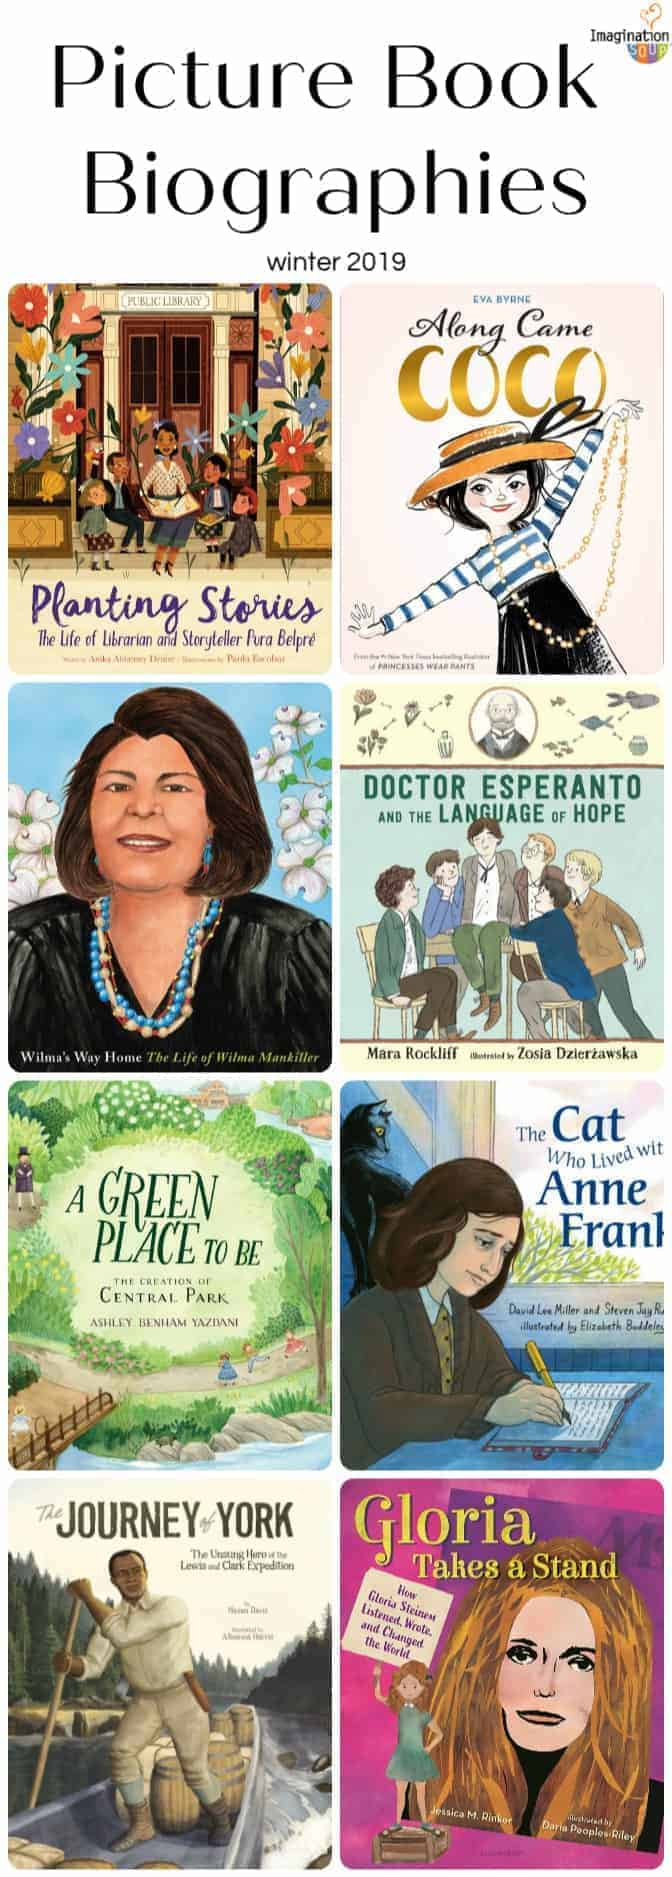 new picture book biographies winter 2019